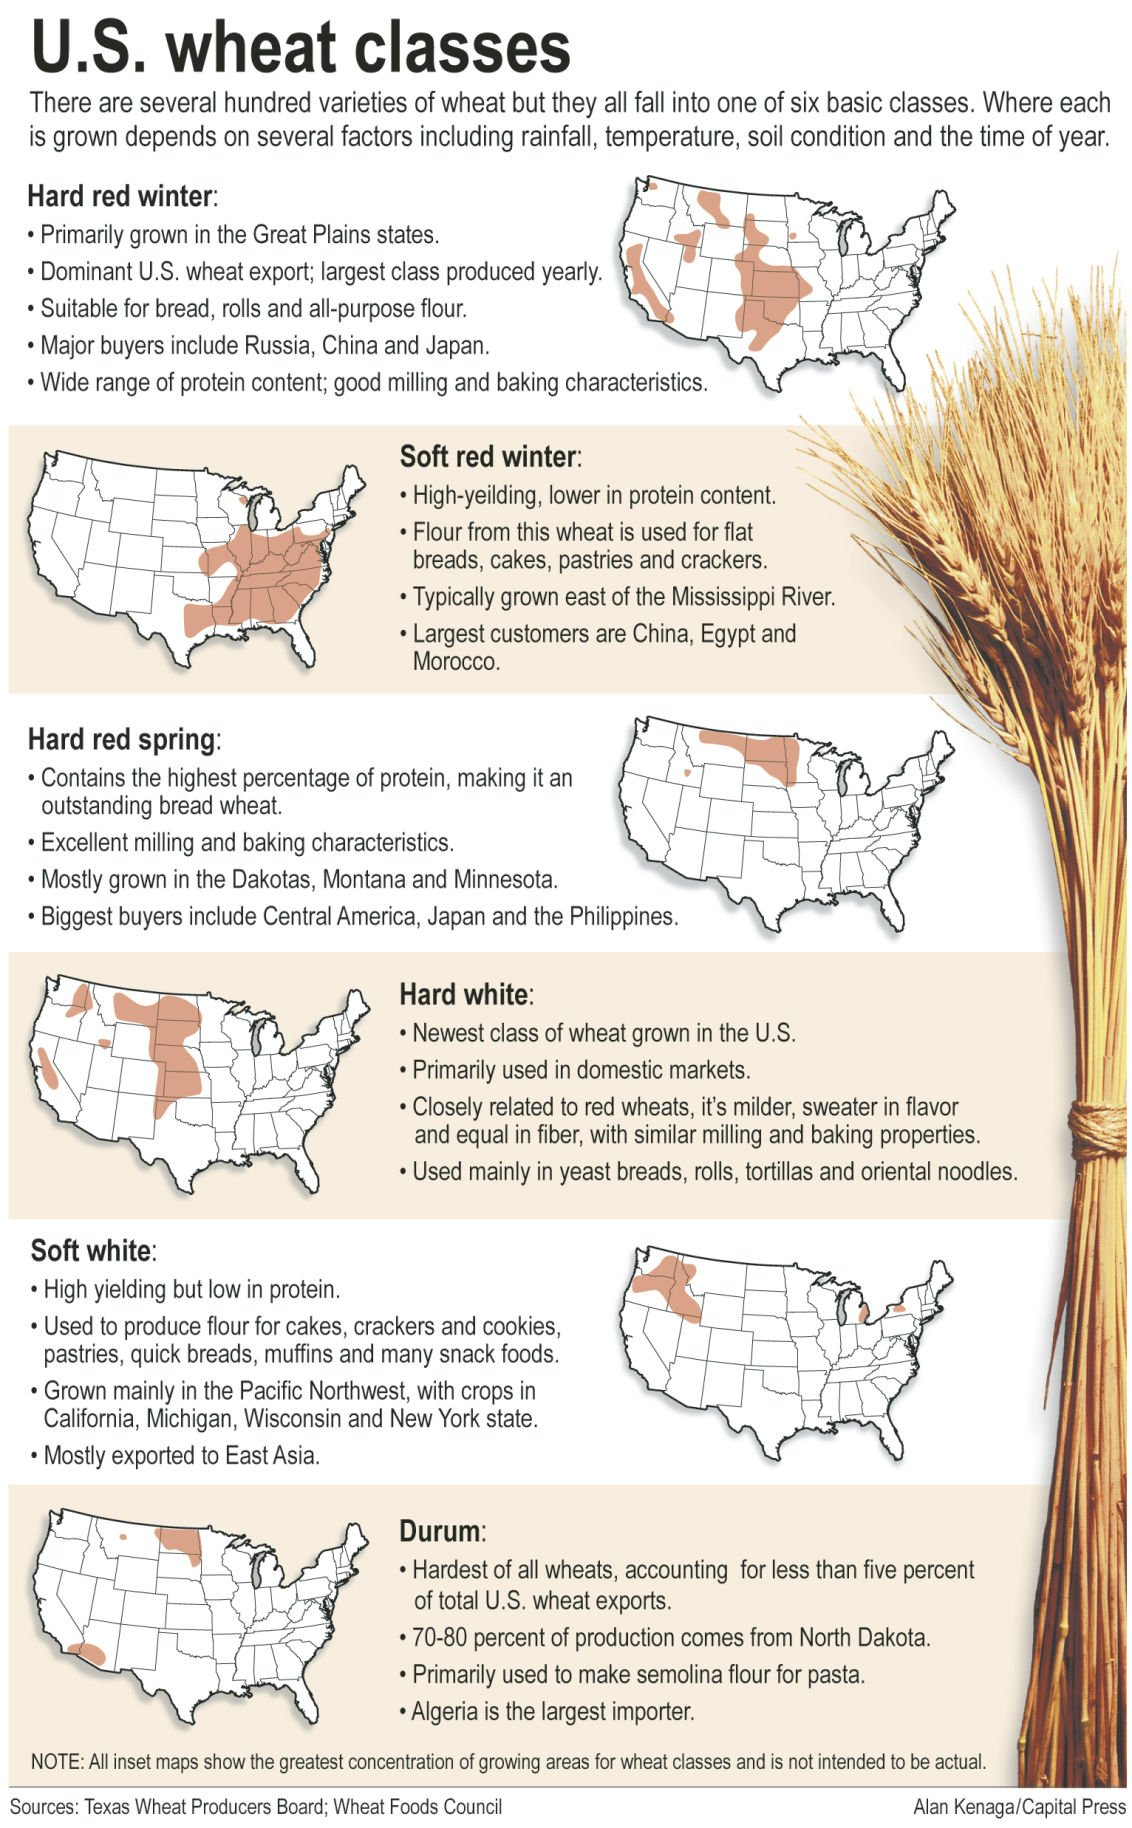 Wheat wizards open trade doors | Ag Sectors | capitalpress com